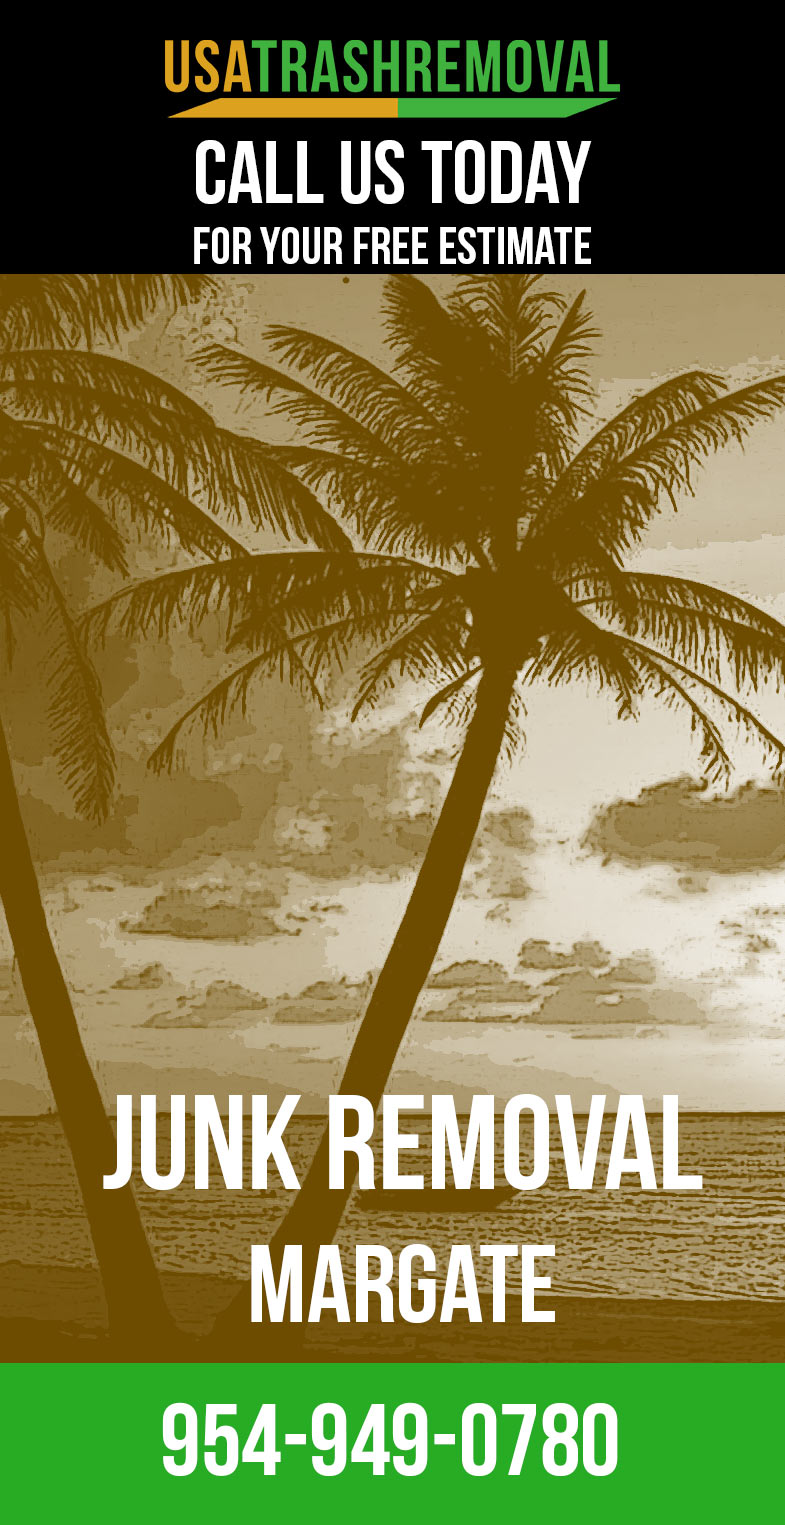 Junk Removal Margate